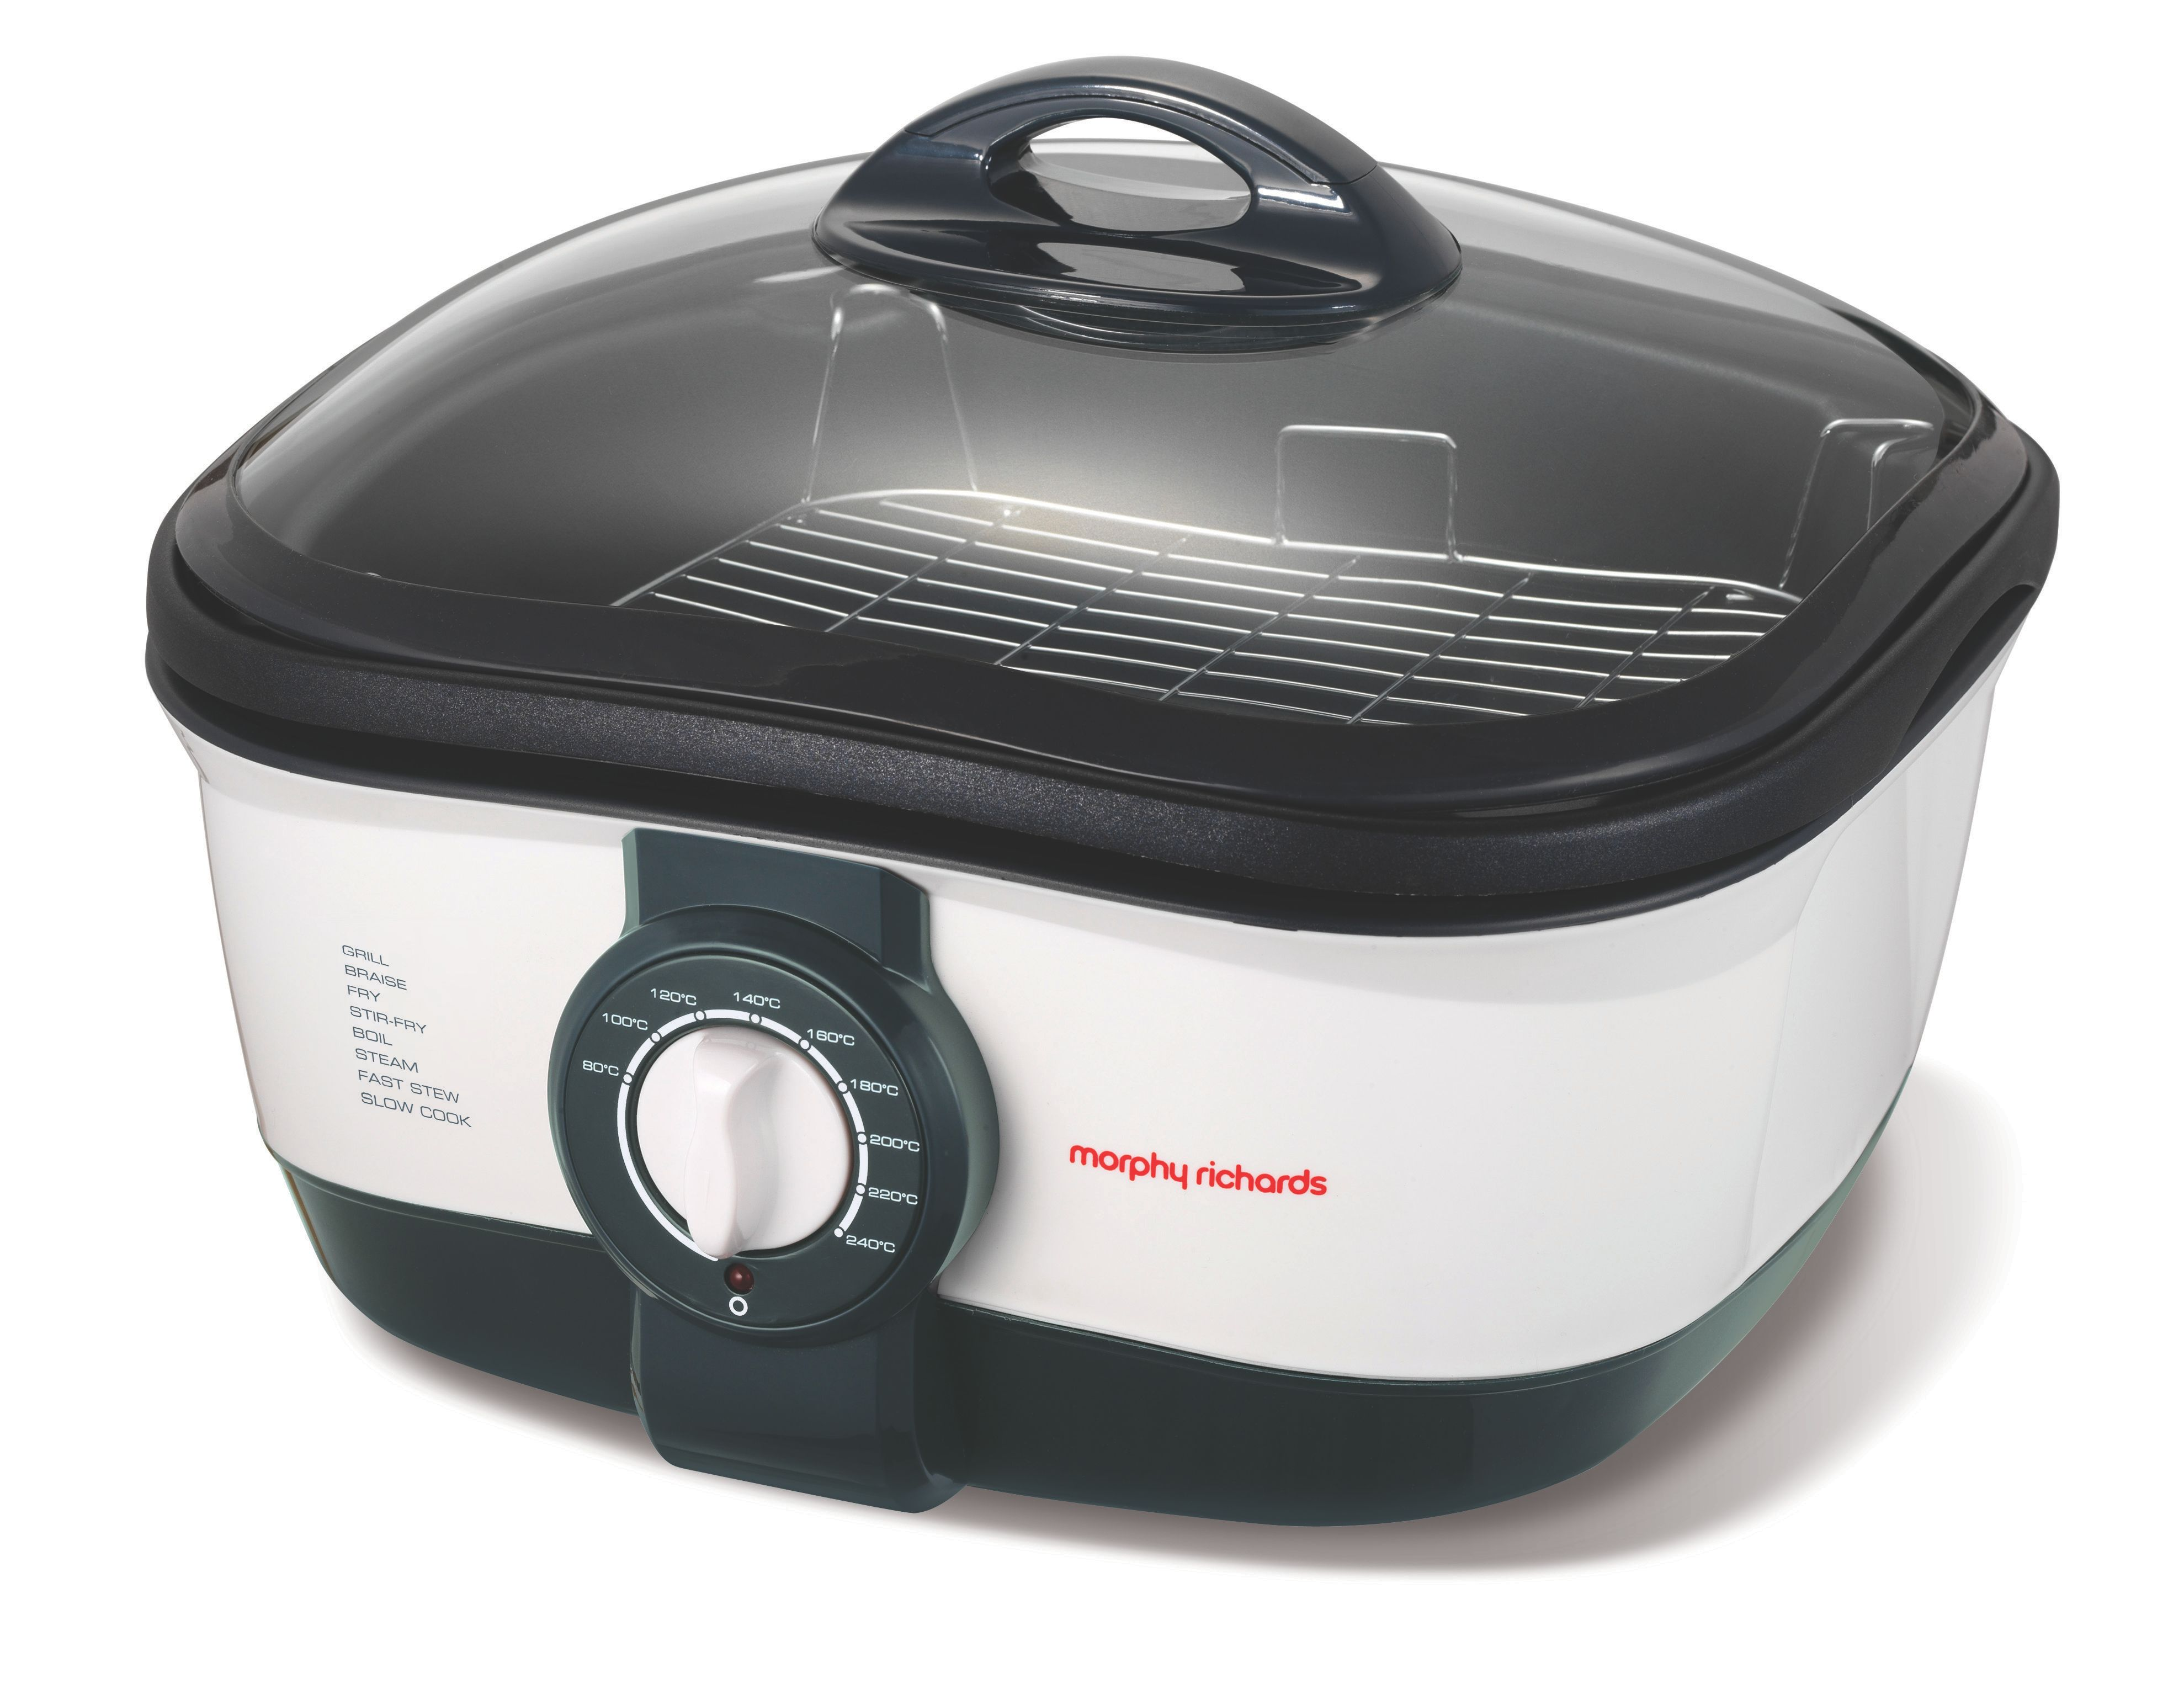 Morphy Richard Intellichef multicooker 48615